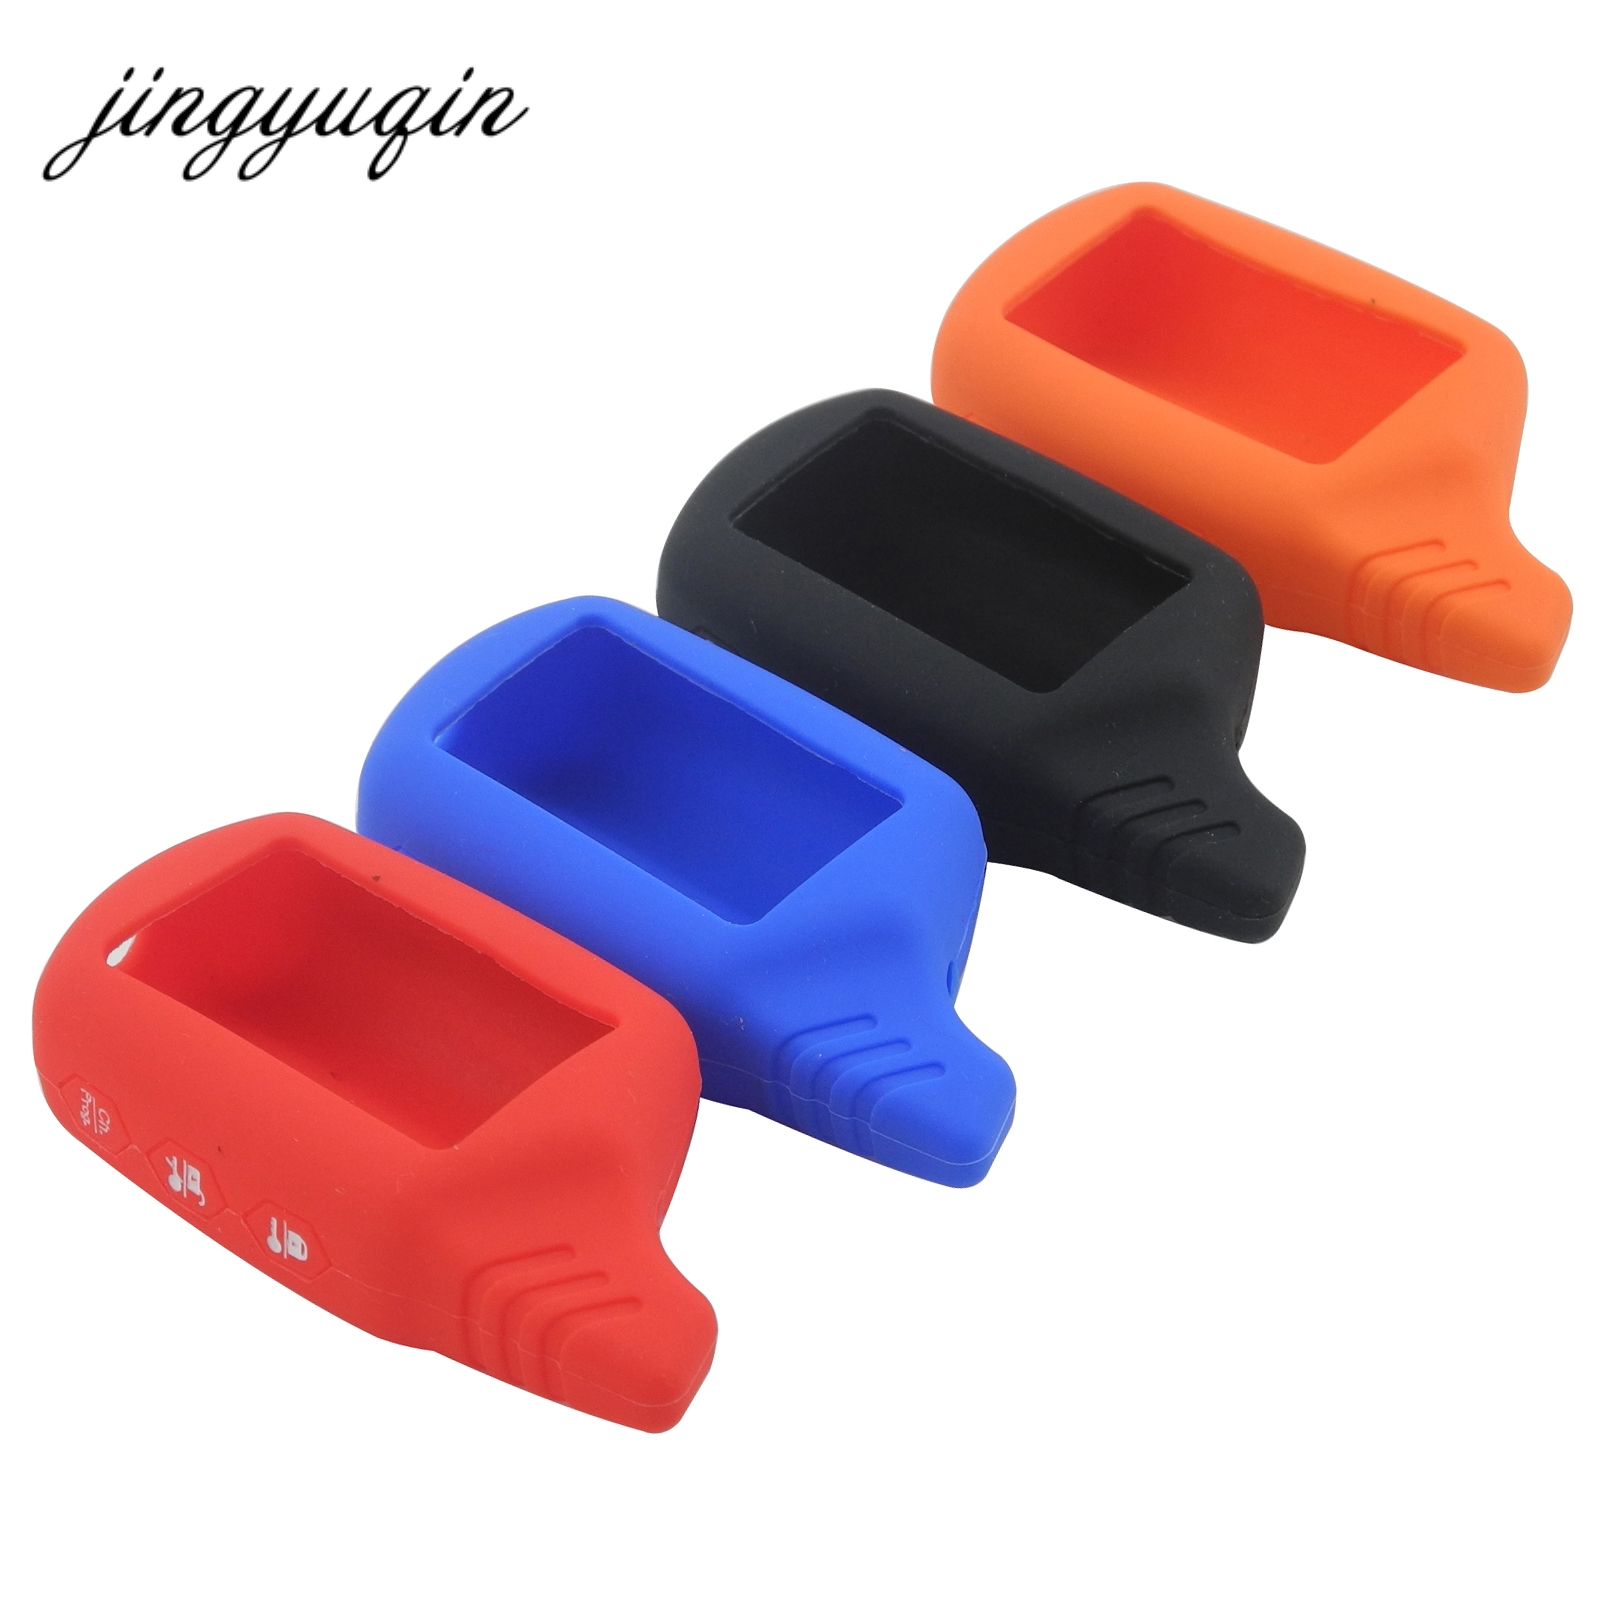 jingyuqin Key Cover B9/B6 Silicone Case for Starline B91/B61/A91/A61 KGB FX-5 Jaguar ez-one LCD Keychain Car Remote 2 Way Alarm for epson sure color s30680 s50680 s70680 solvent damper page 2